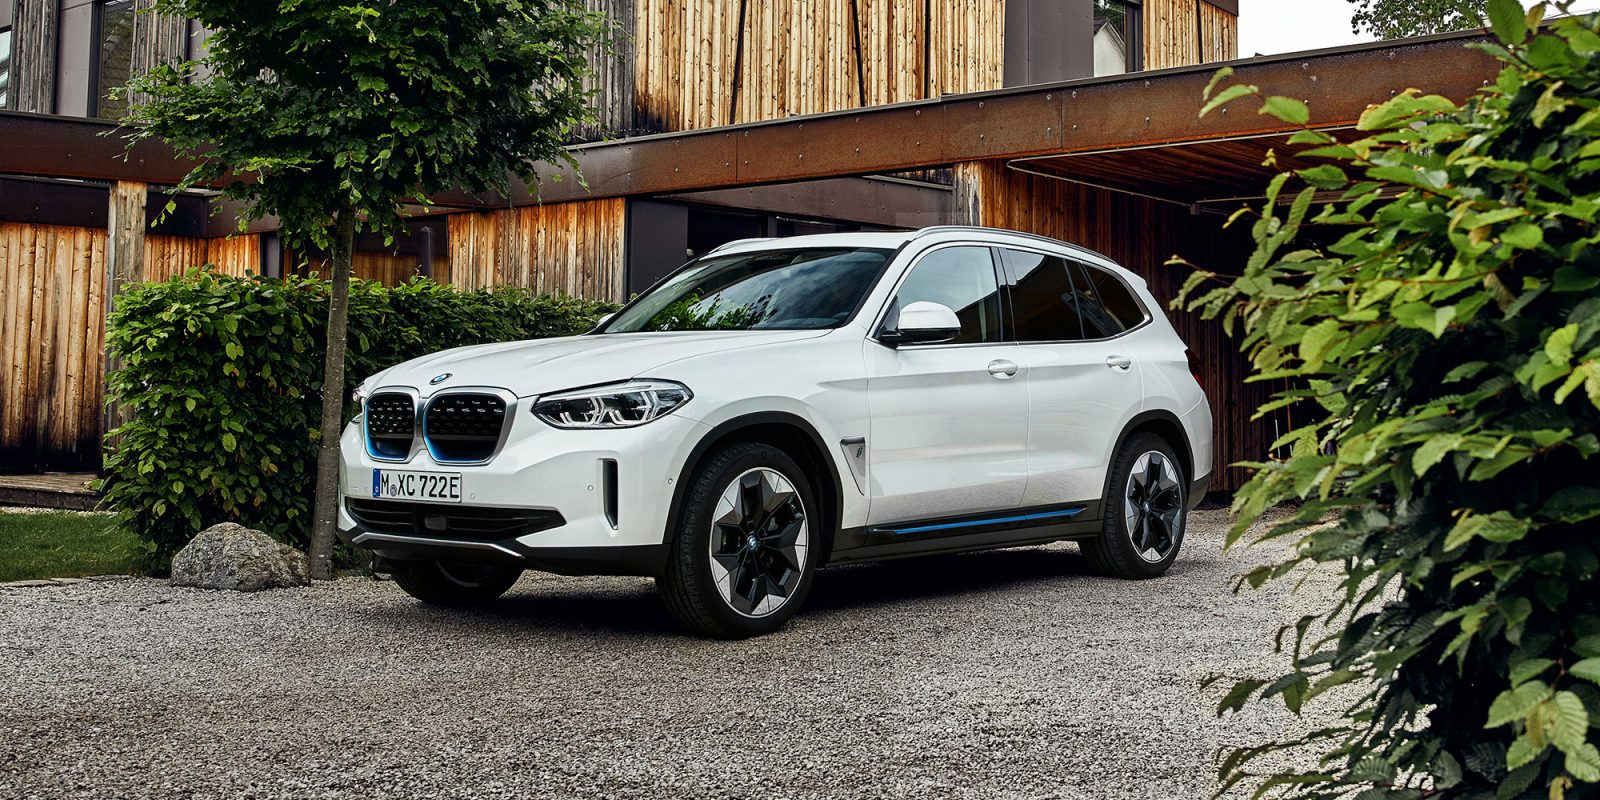 2021 BMW iX3 Is An All-Electric SUV That Impresses